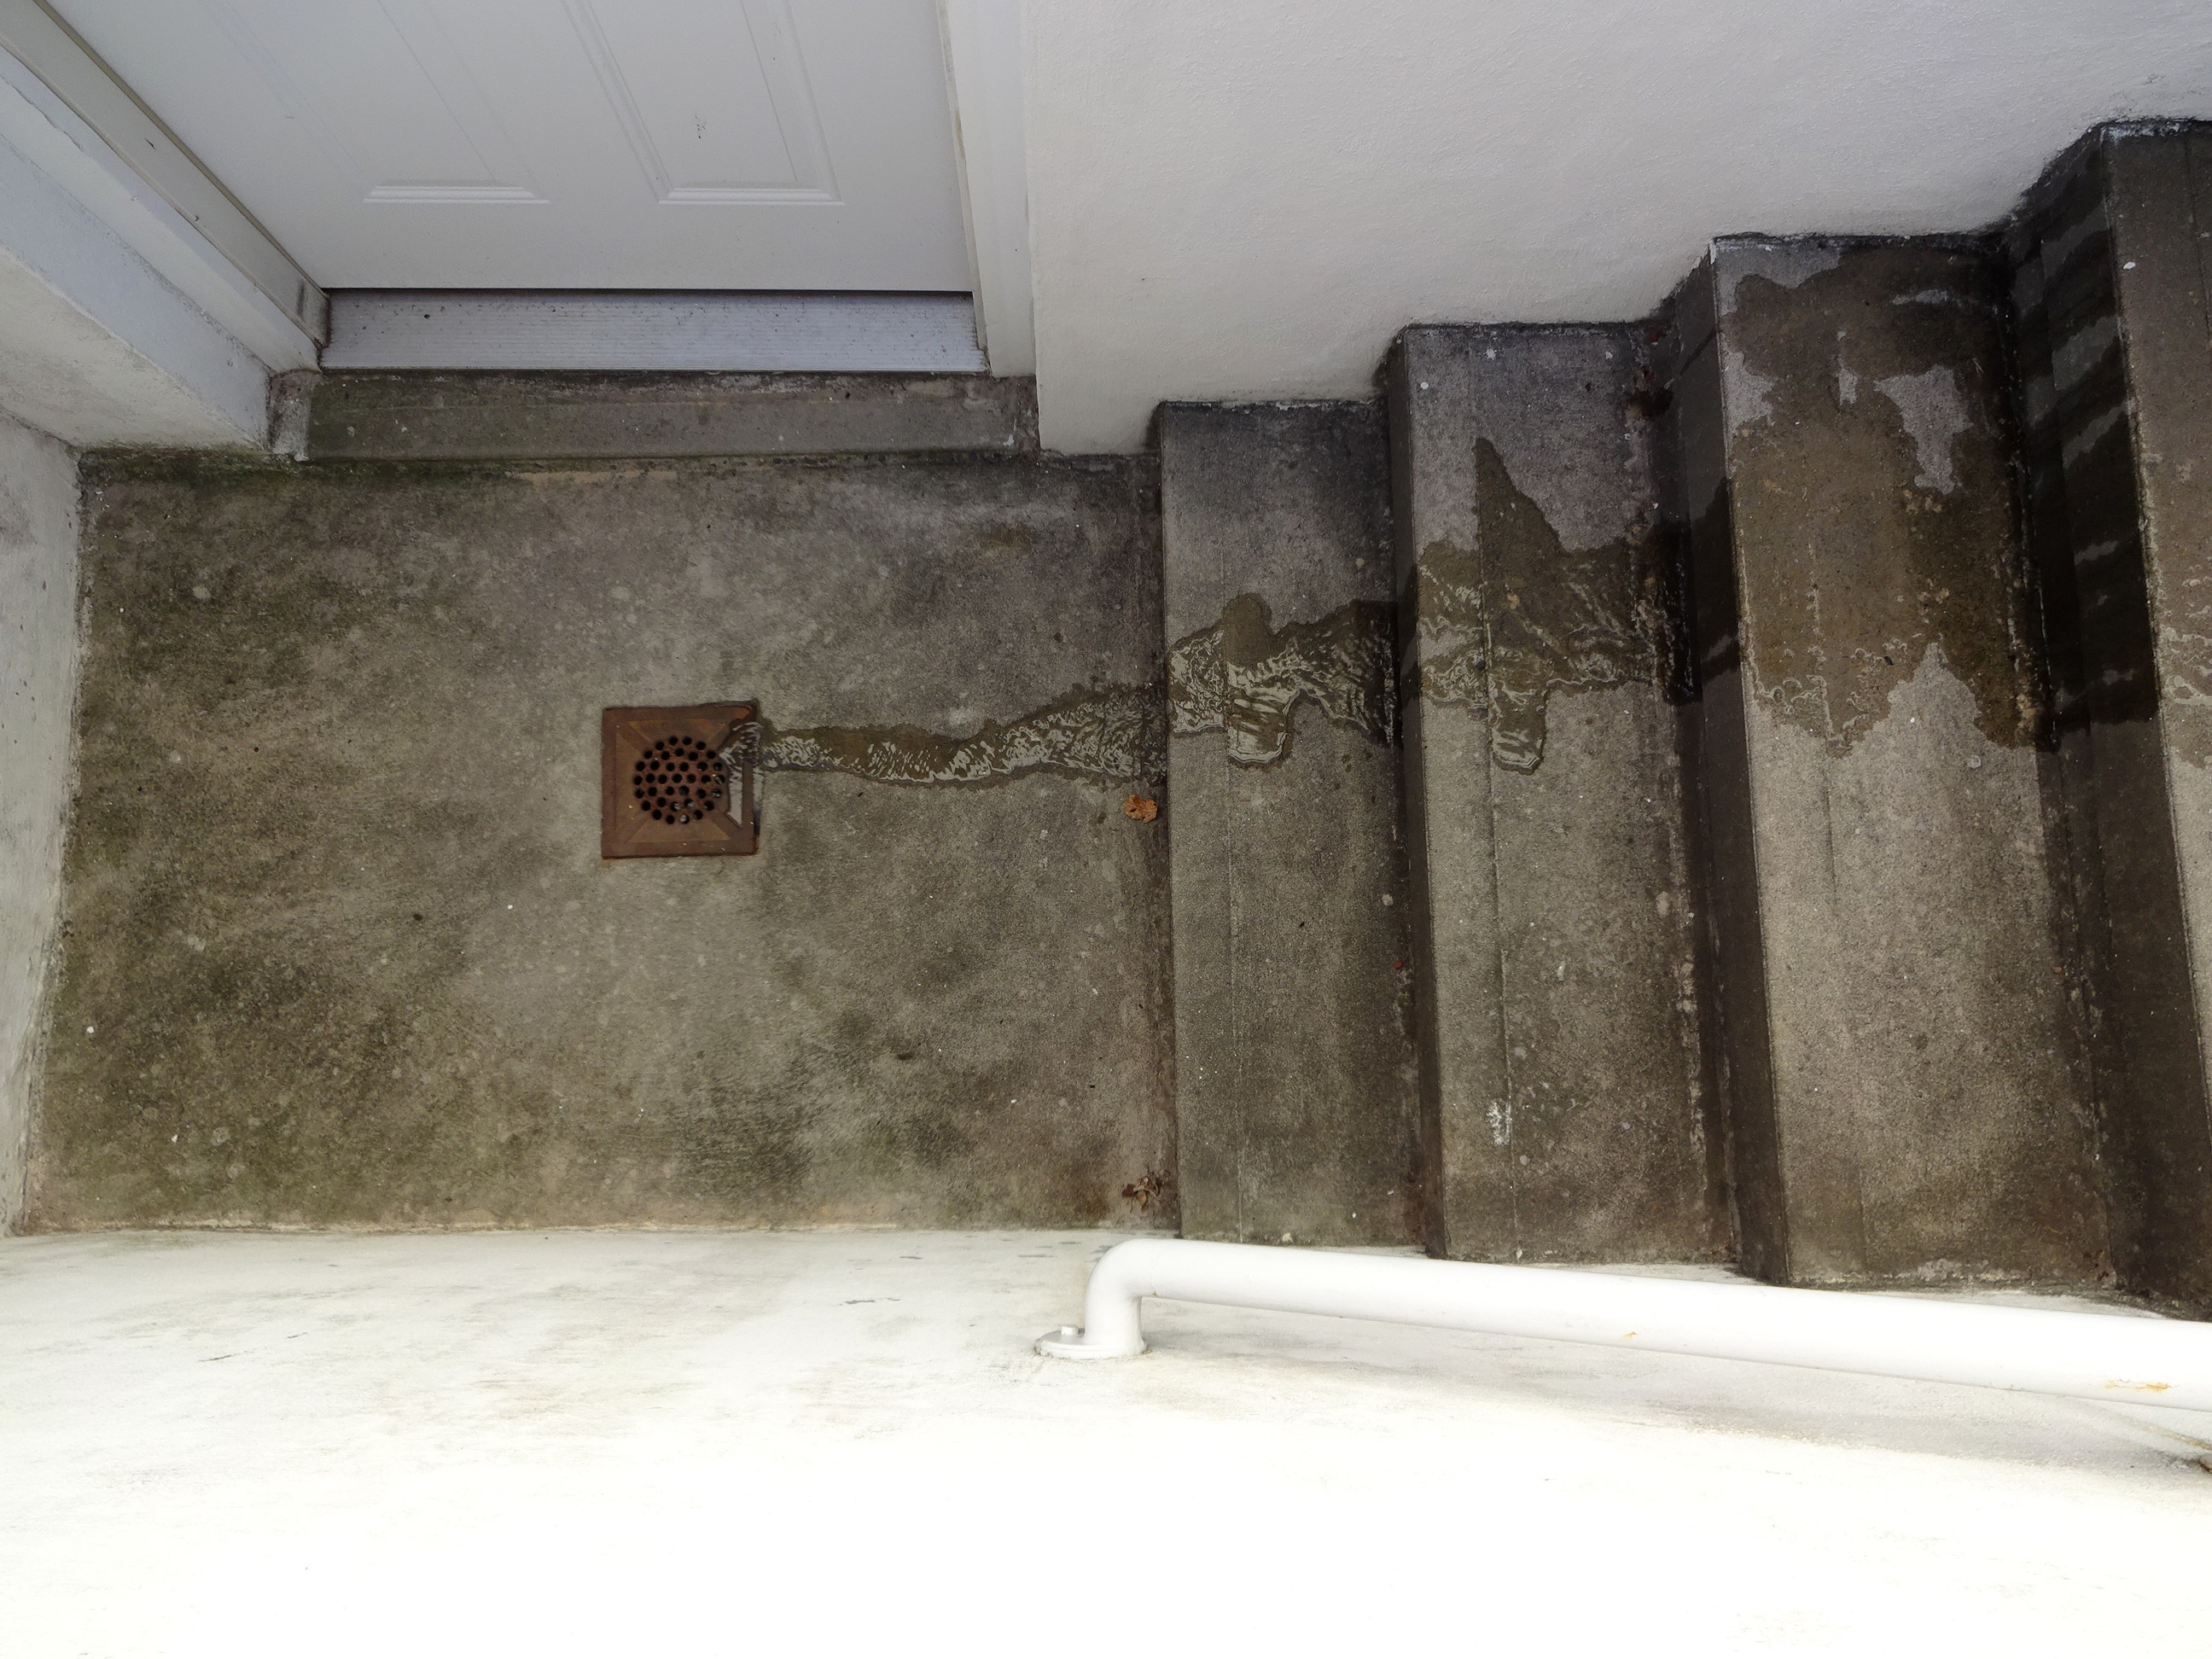 Basement Stairwell Drain Clogged